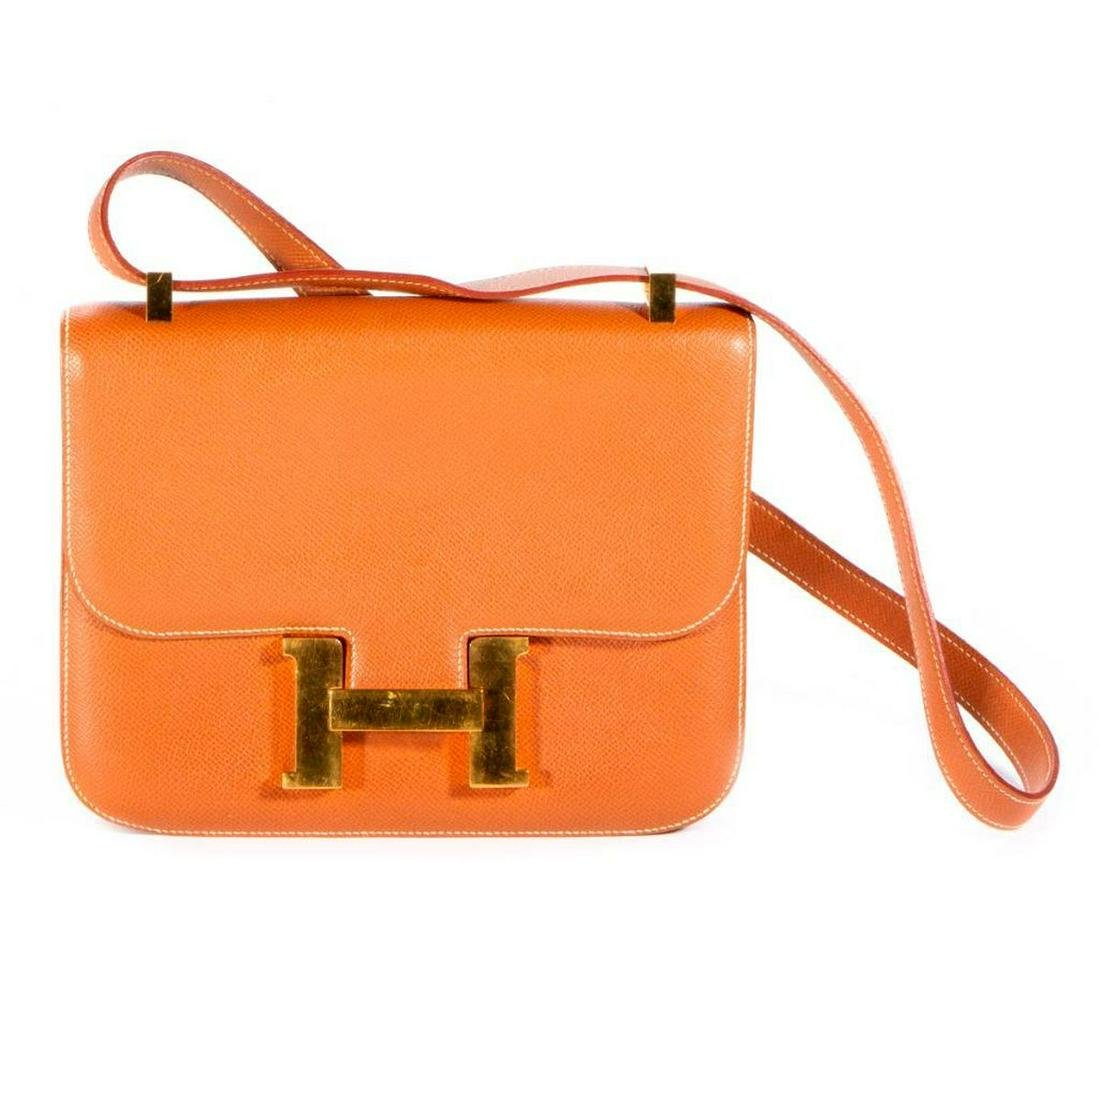 Hermes tan leather purse